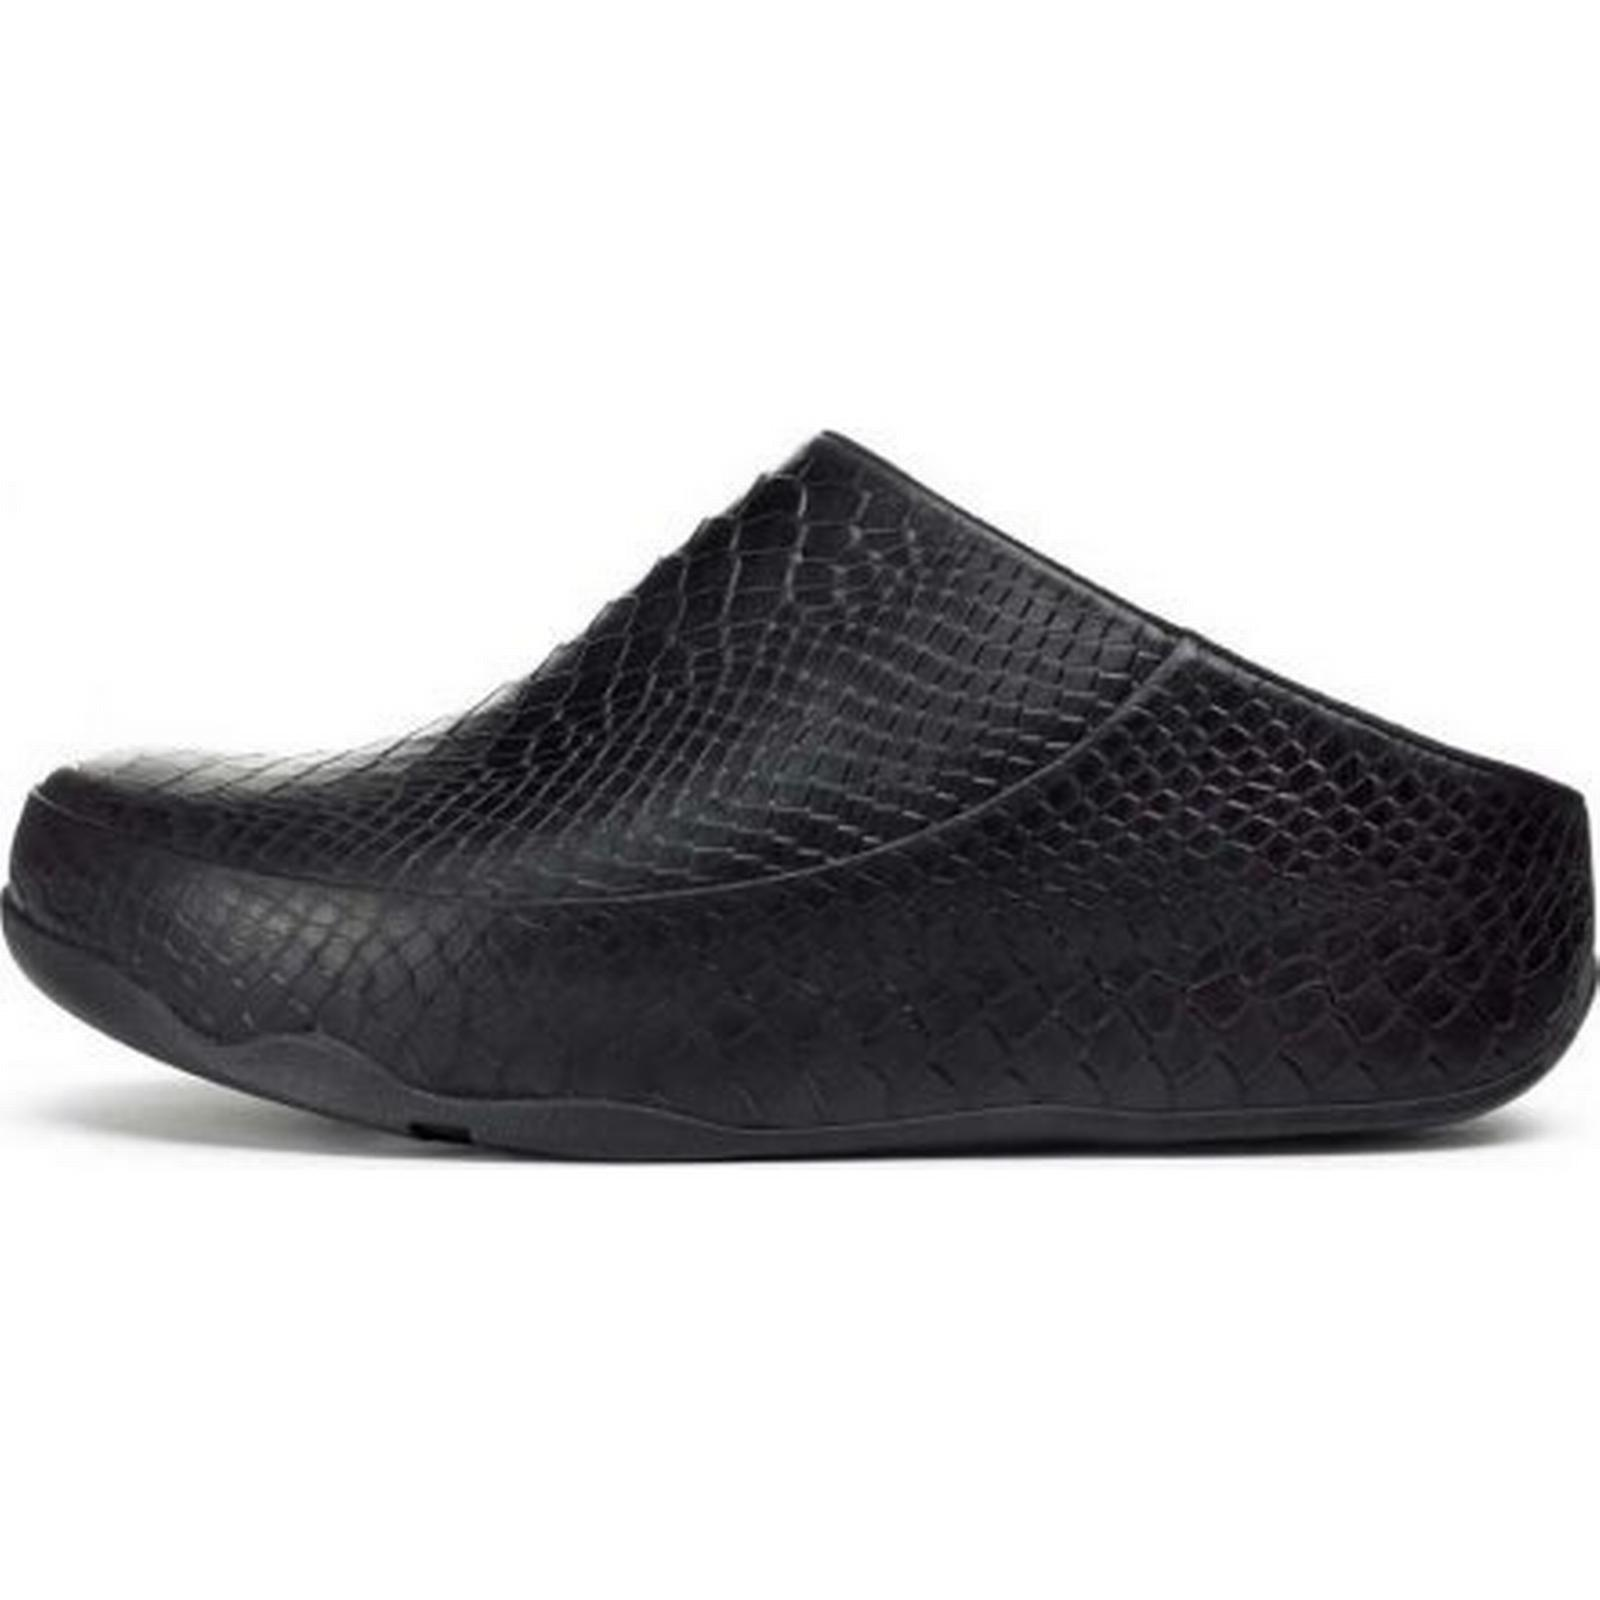 FitFlop Gogh Moc Snake casual slip on clogs in in clogs black Size: 2, Colour: 6cb38b